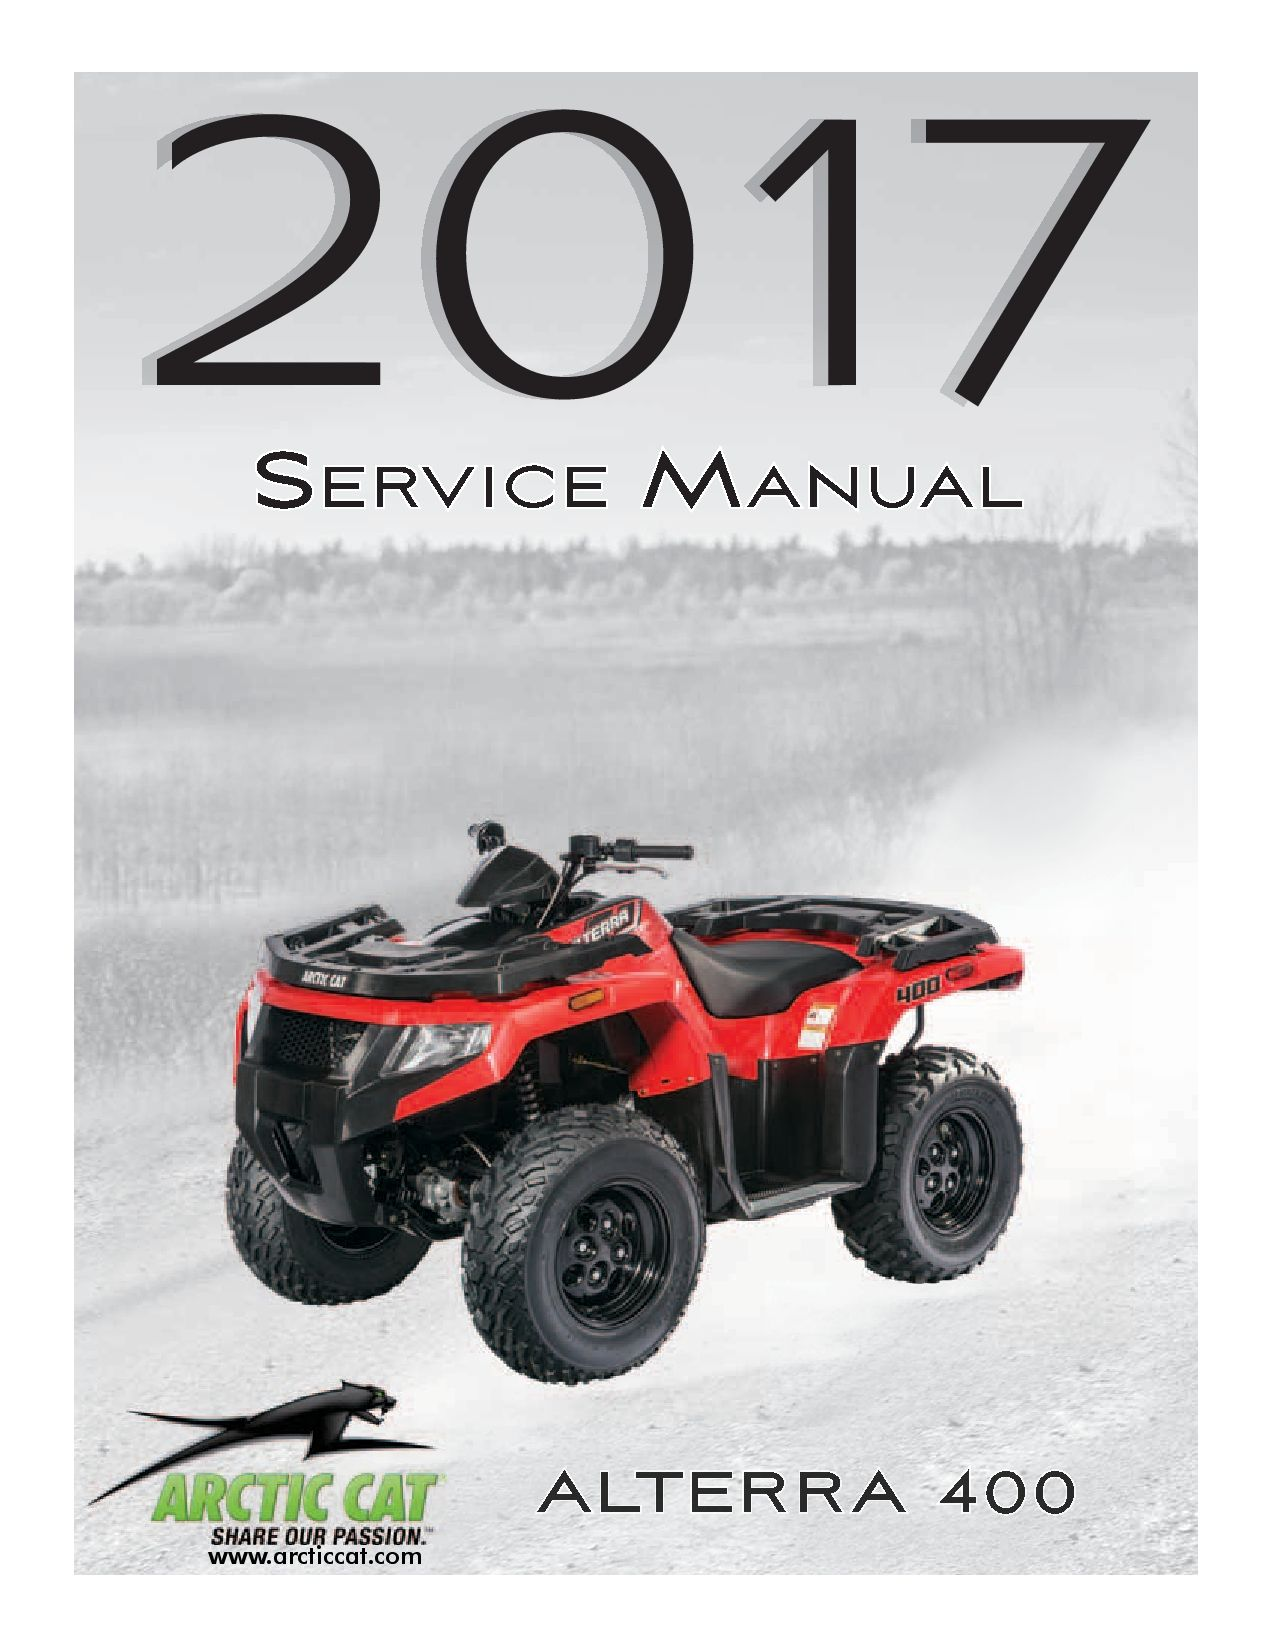 Arctic Cat 2017 Alterra 400 Service Manual Pdf Download Service Manual Repair Manual Pdf Download Repair Manuals Pdf Download Manual